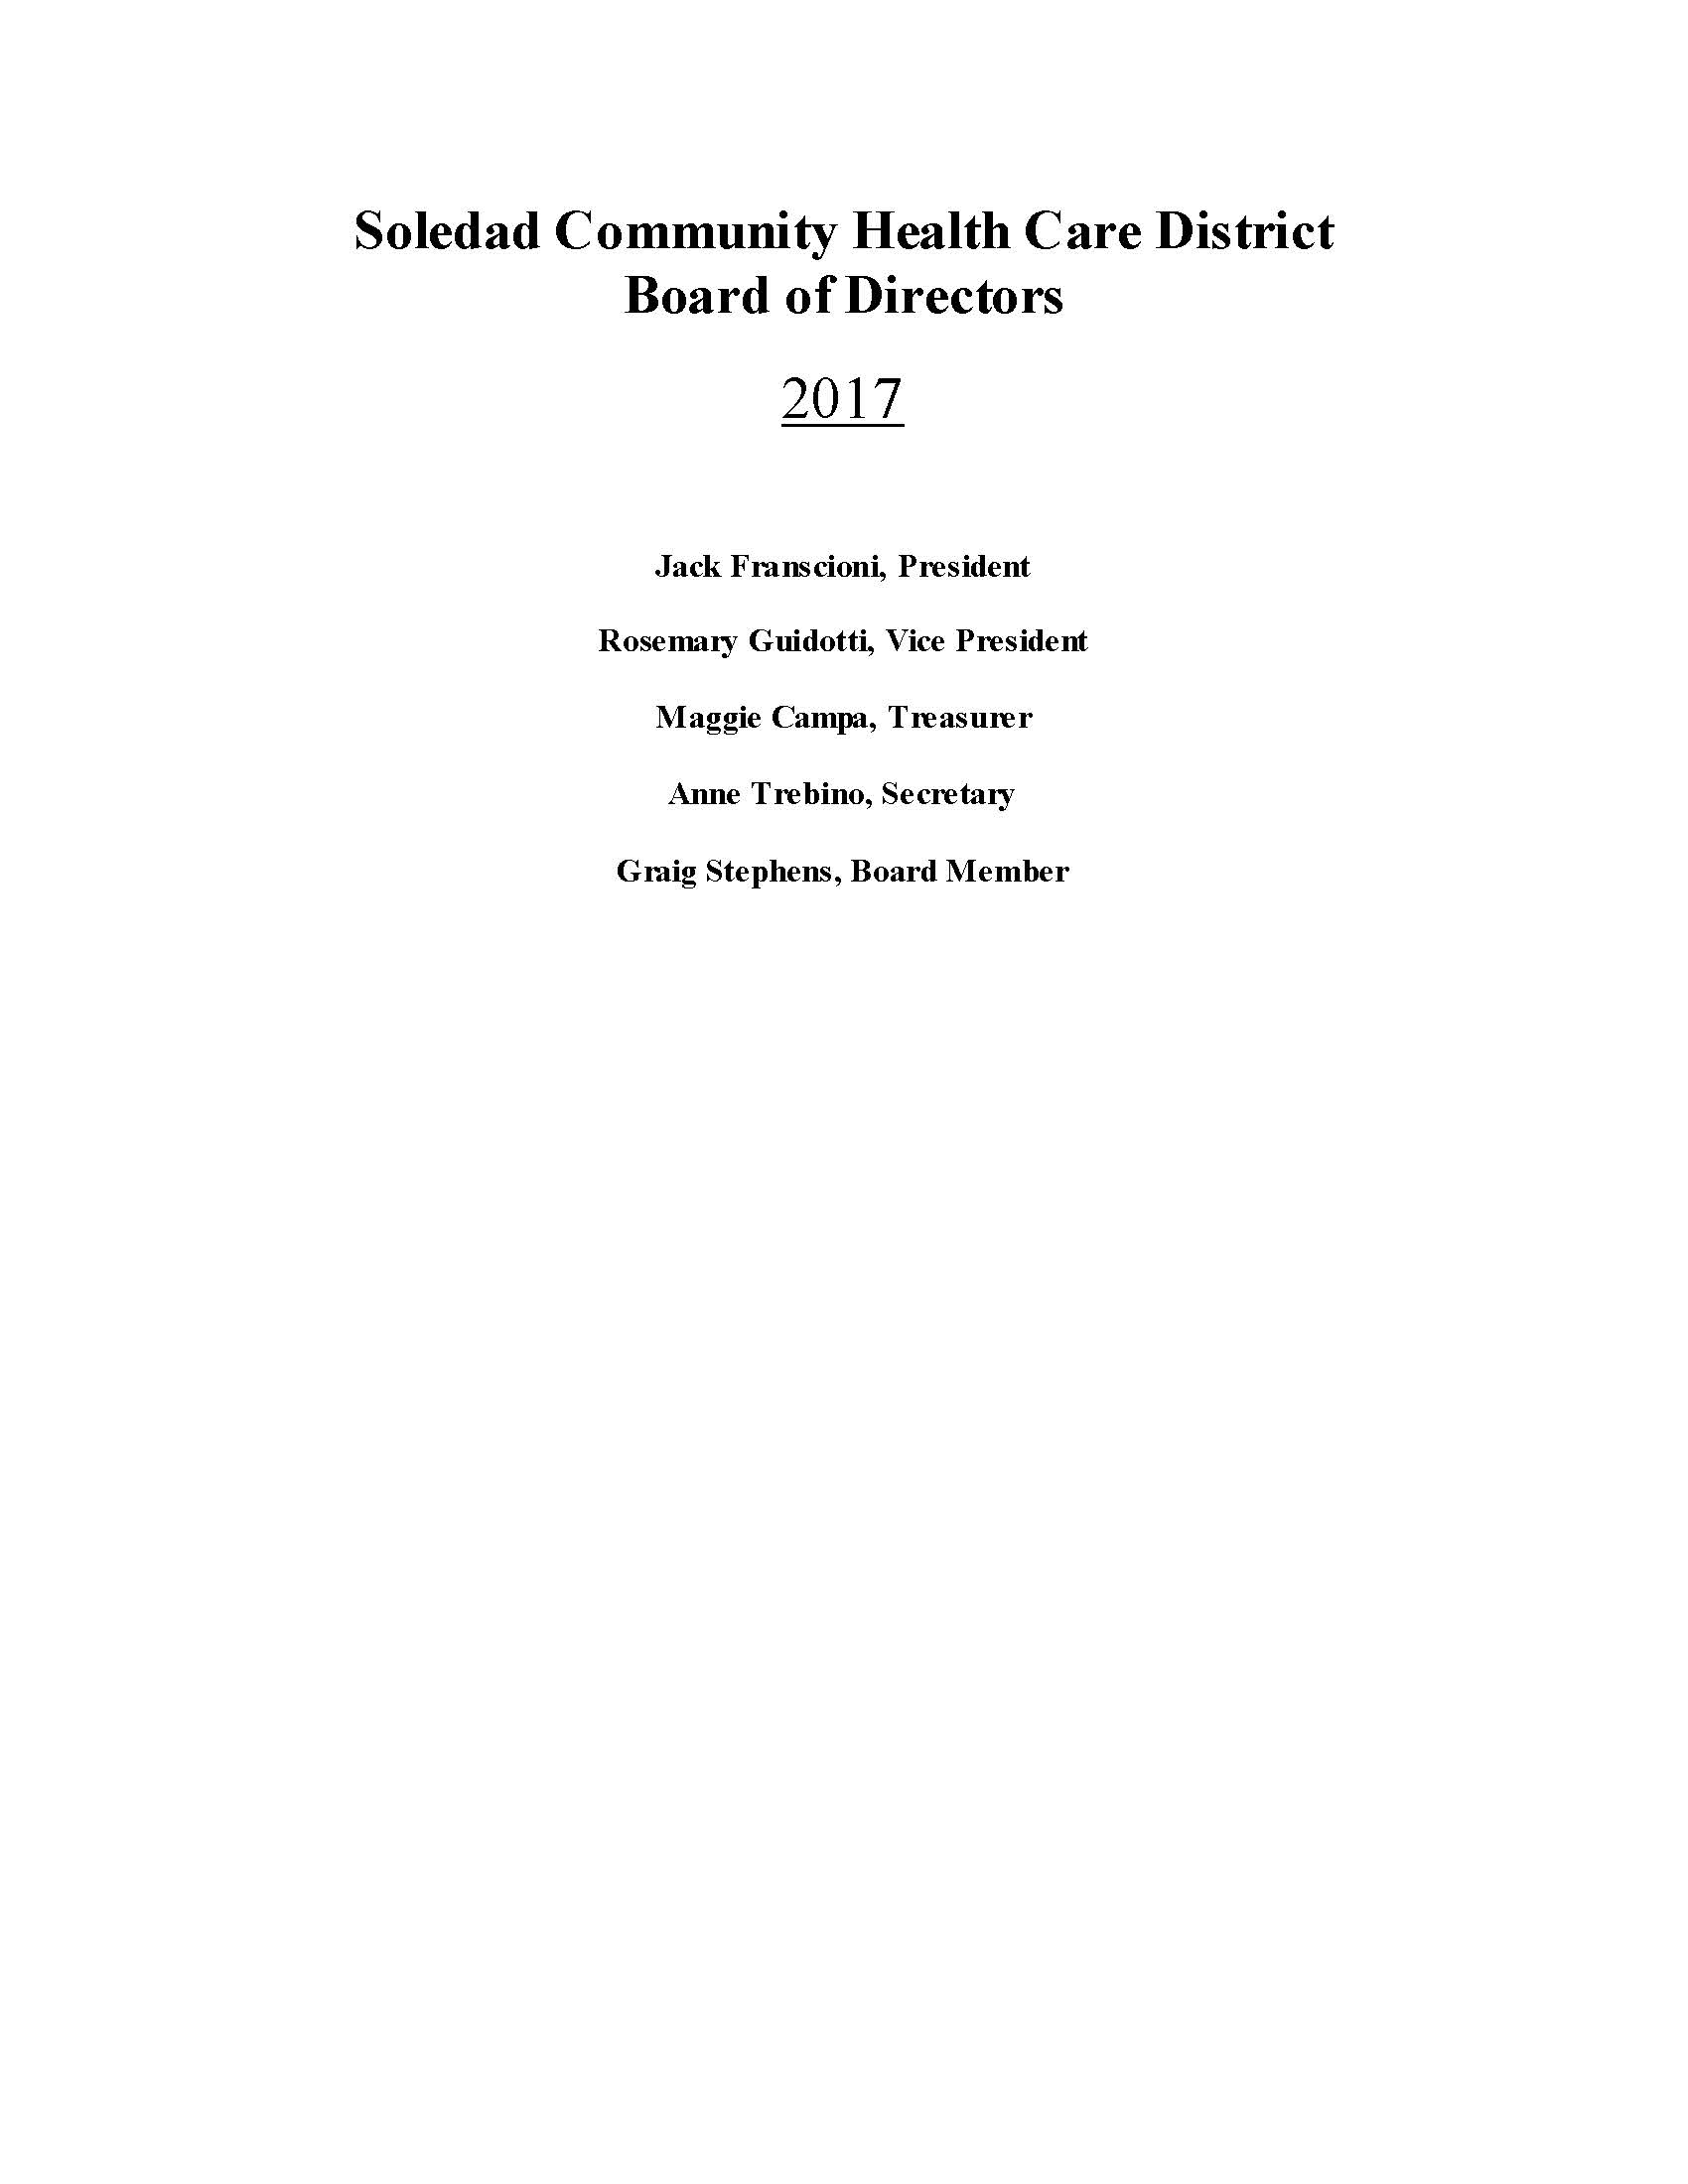 Board of Directors 2017 website list